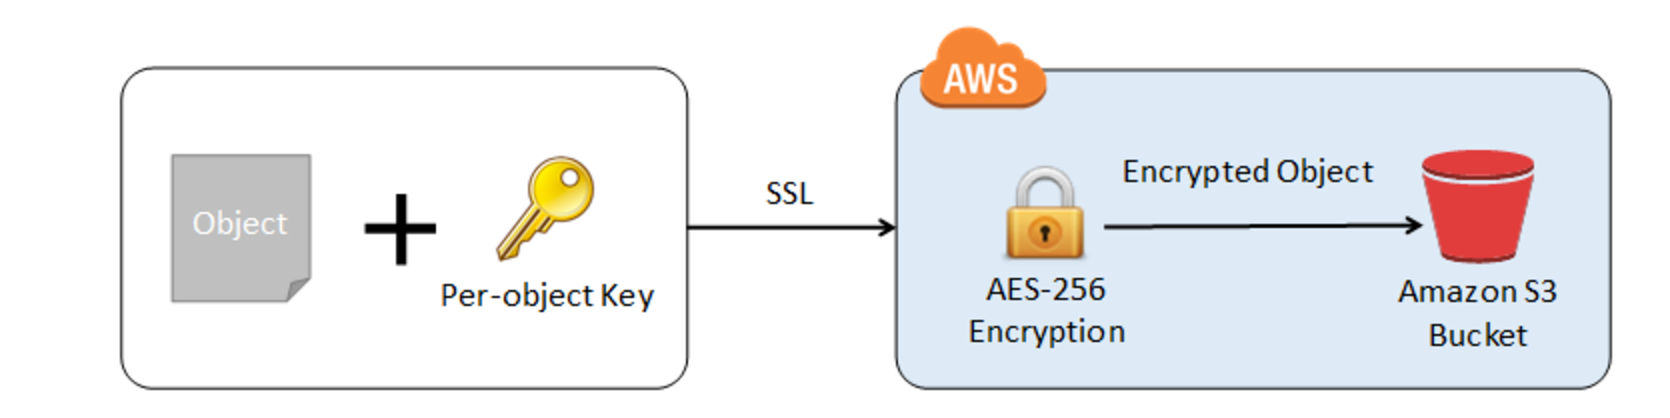 AWS S3 Server Side Encryption using Customer Provided Keys SSE-C